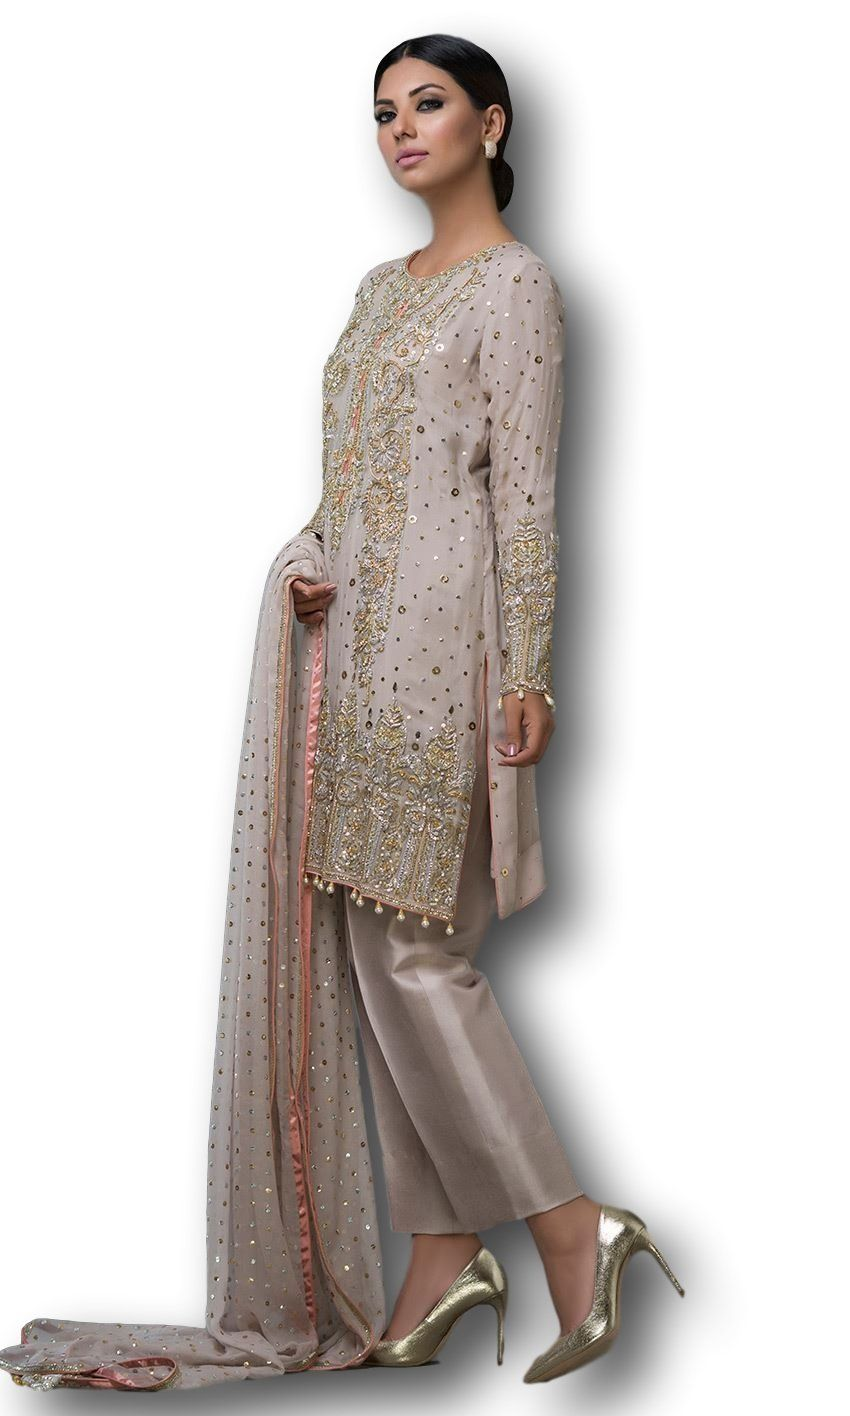 73243794e9 This salwar kameez is featured in georgette fabric. Shirt of this salwar  kameez is embellished